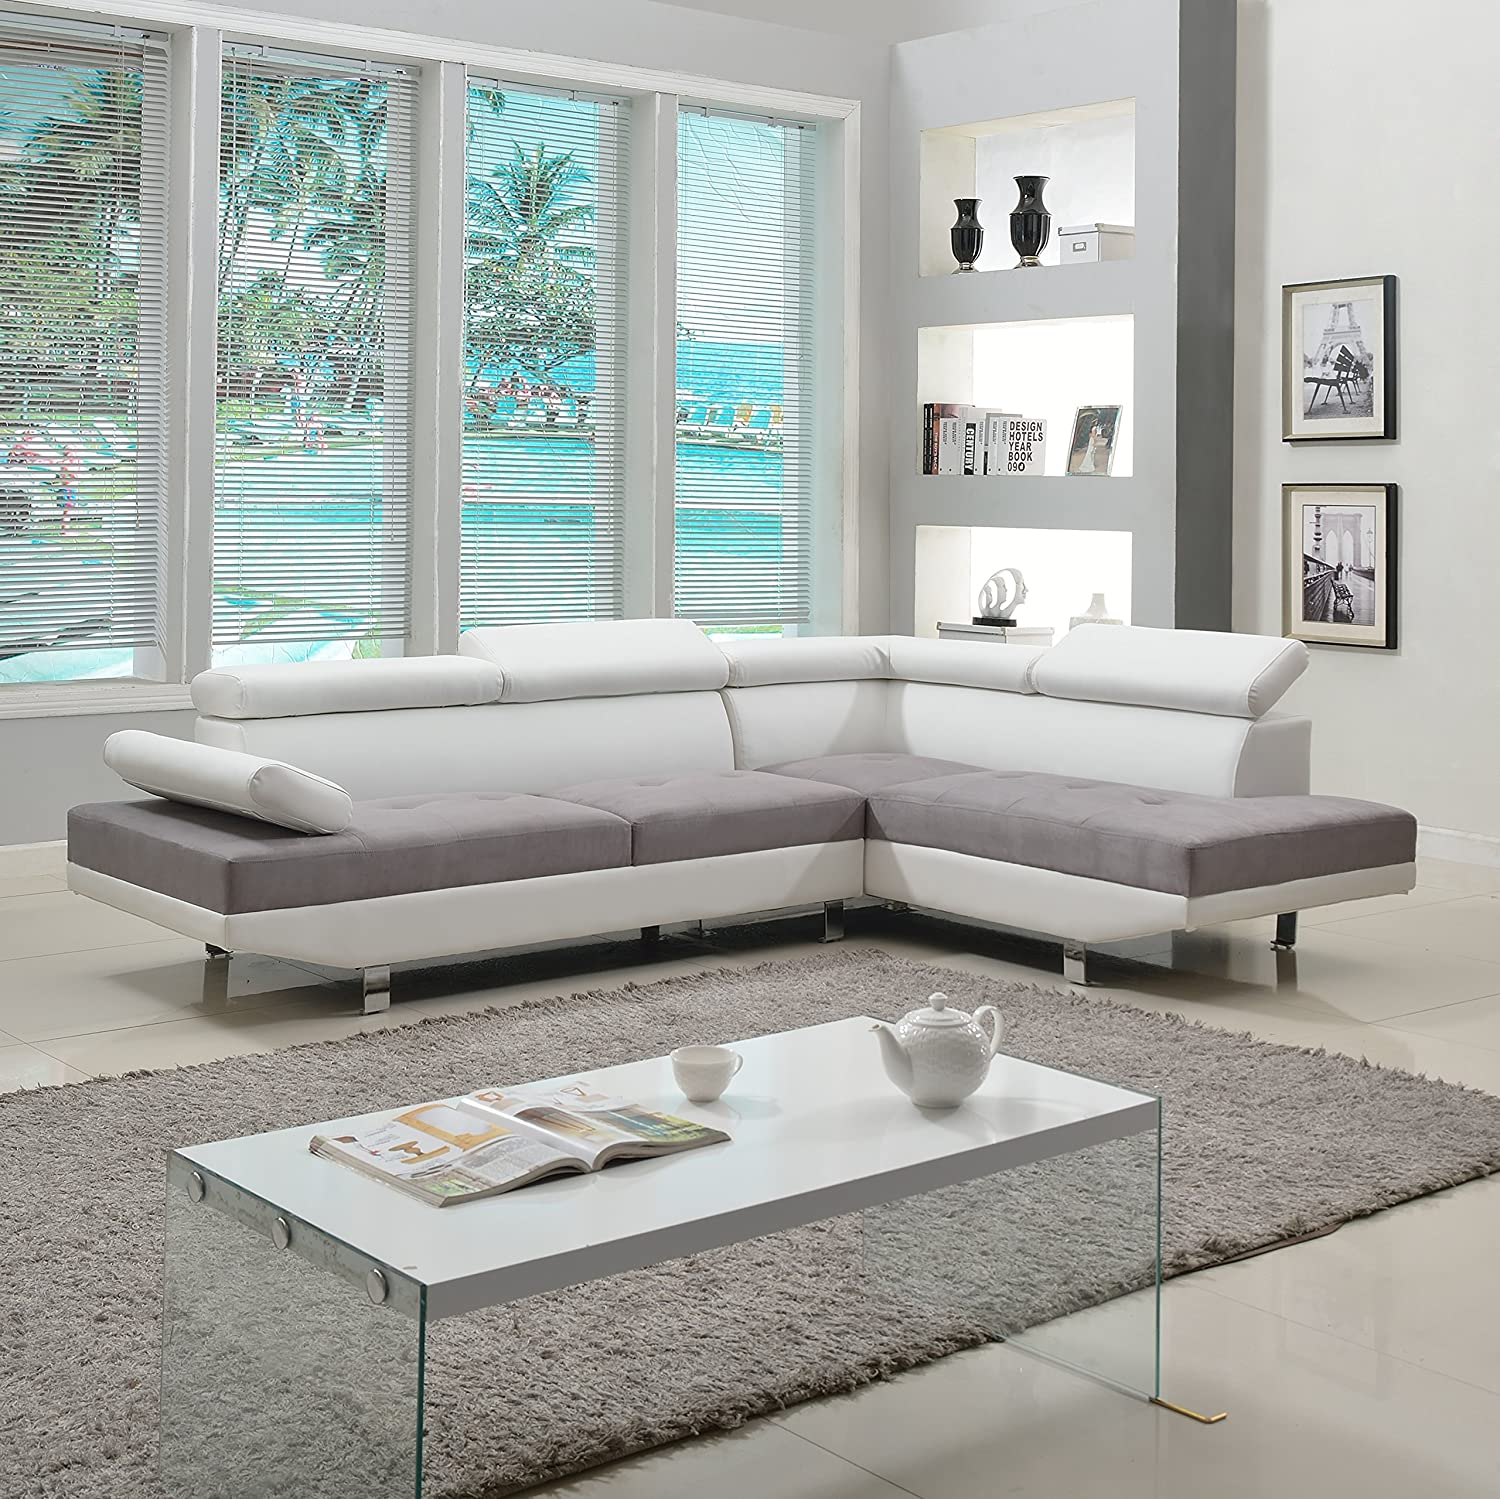 Modern Contemporary Designed Two Tone Microfiber and Bonded Leather Sectional Sofa (White/Grey)